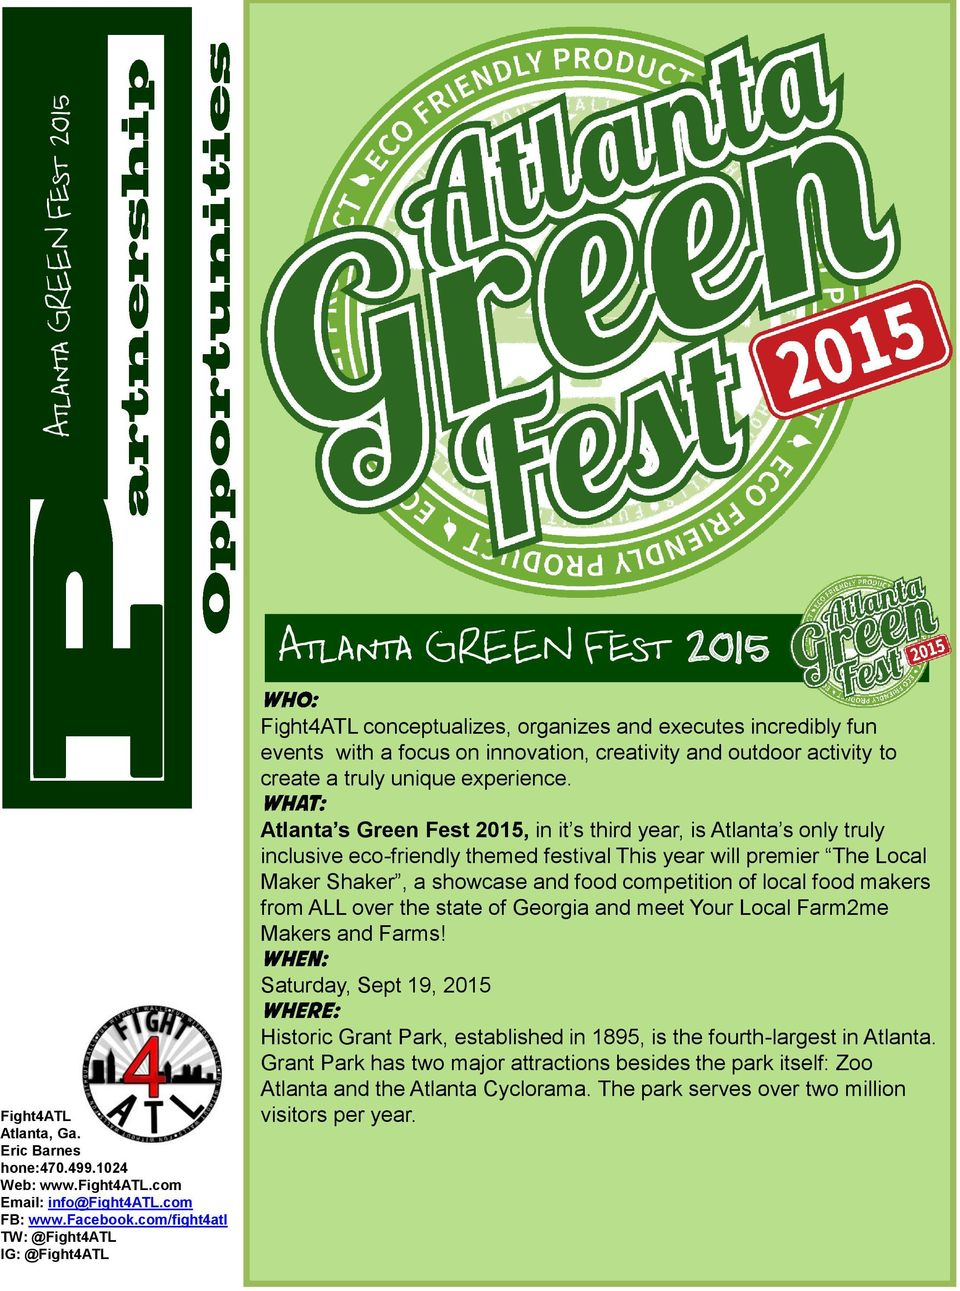 Atlanta s Green Fest 2015, in it s third year, is Atlanta s only truly inclusive eco-friendly themed festival This year will premier The Local Maker Shaker, a showcase and food competition of local